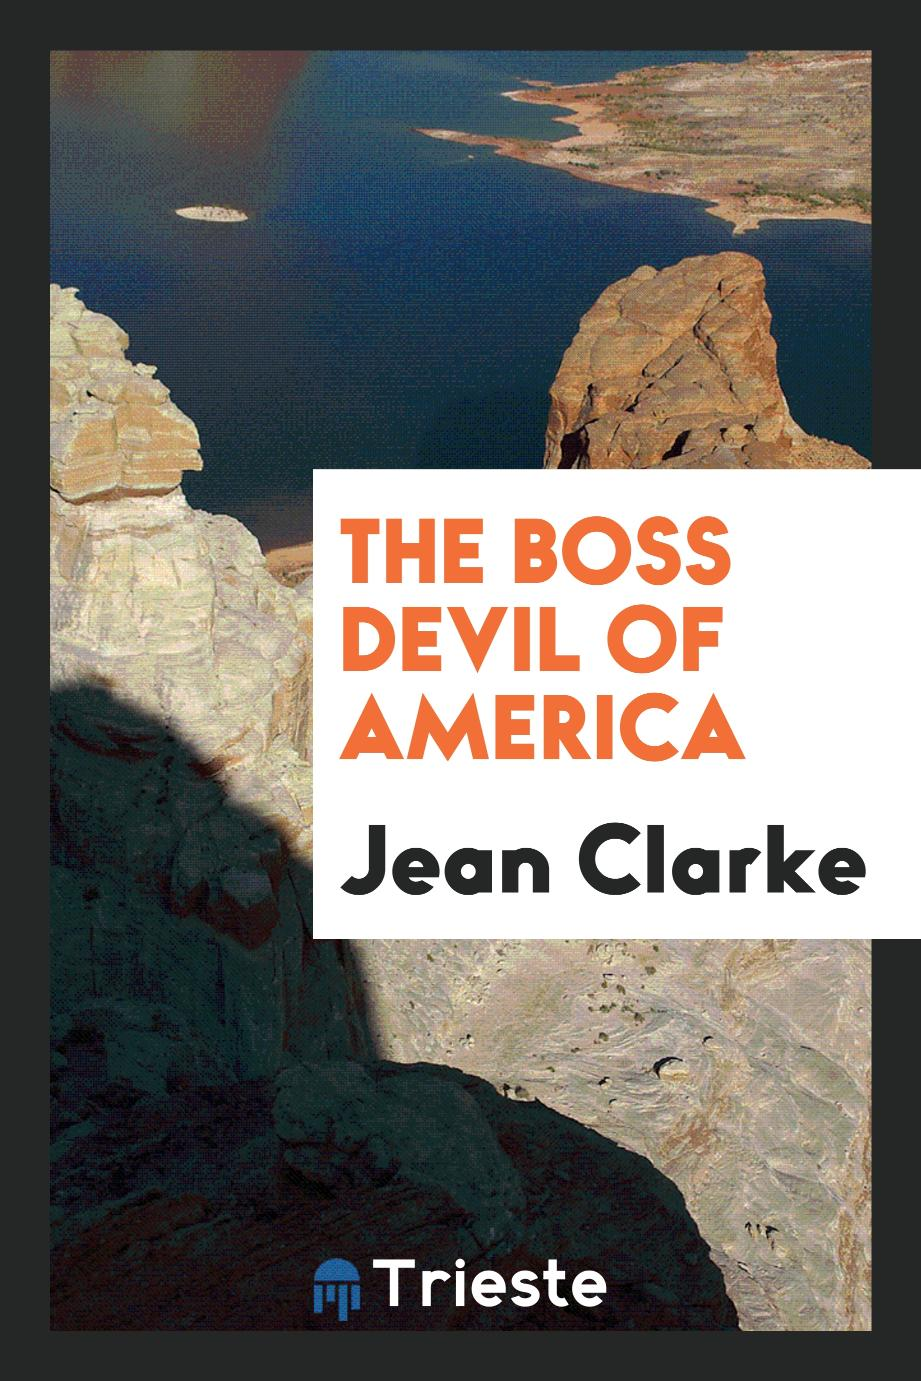 The Boss Devil of America